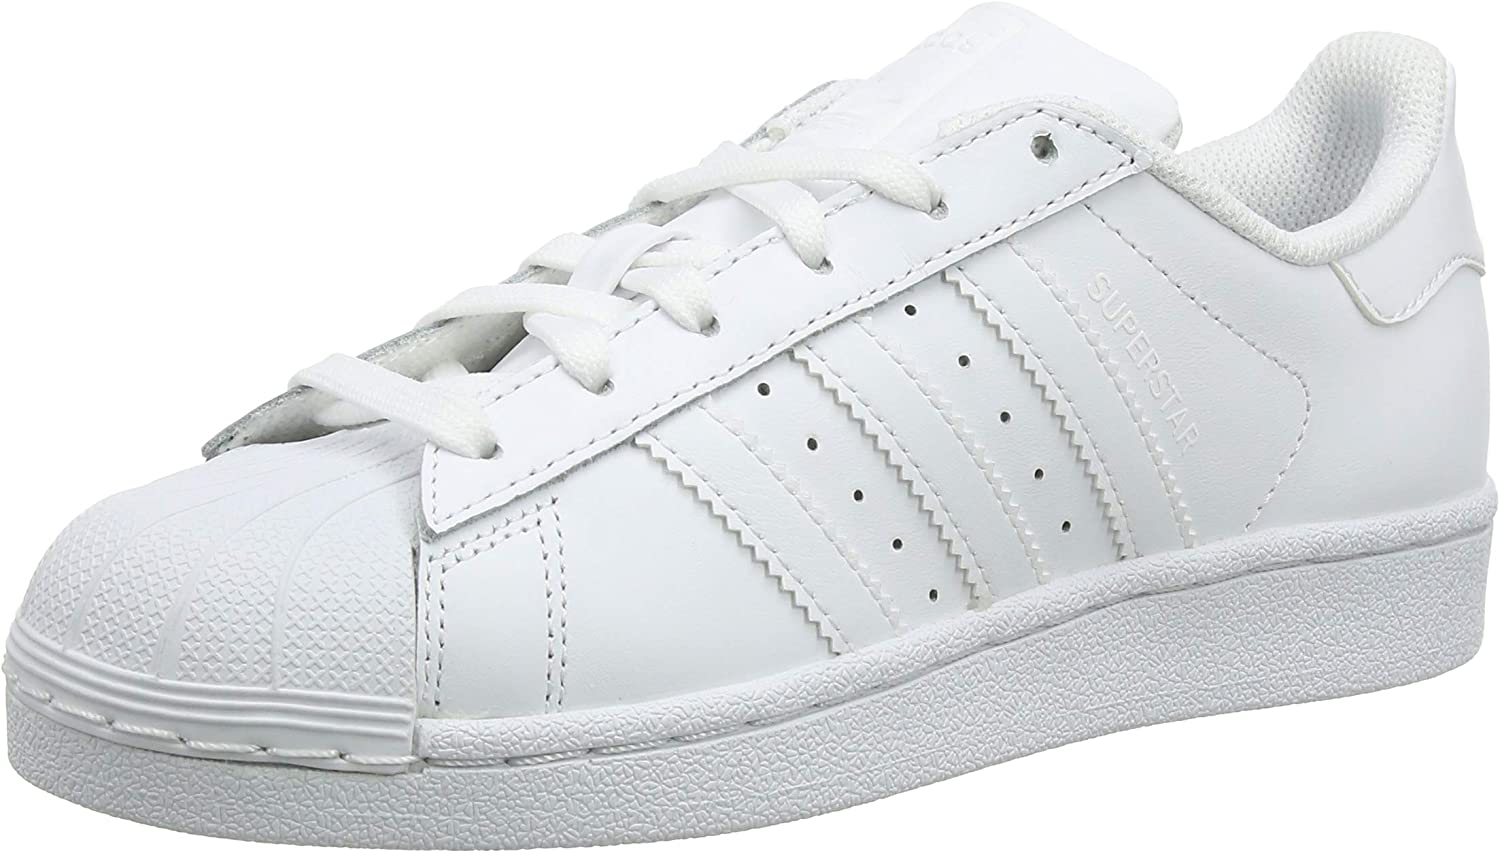 Adidas Unisex Adults' Superstar Gymnastics shoes